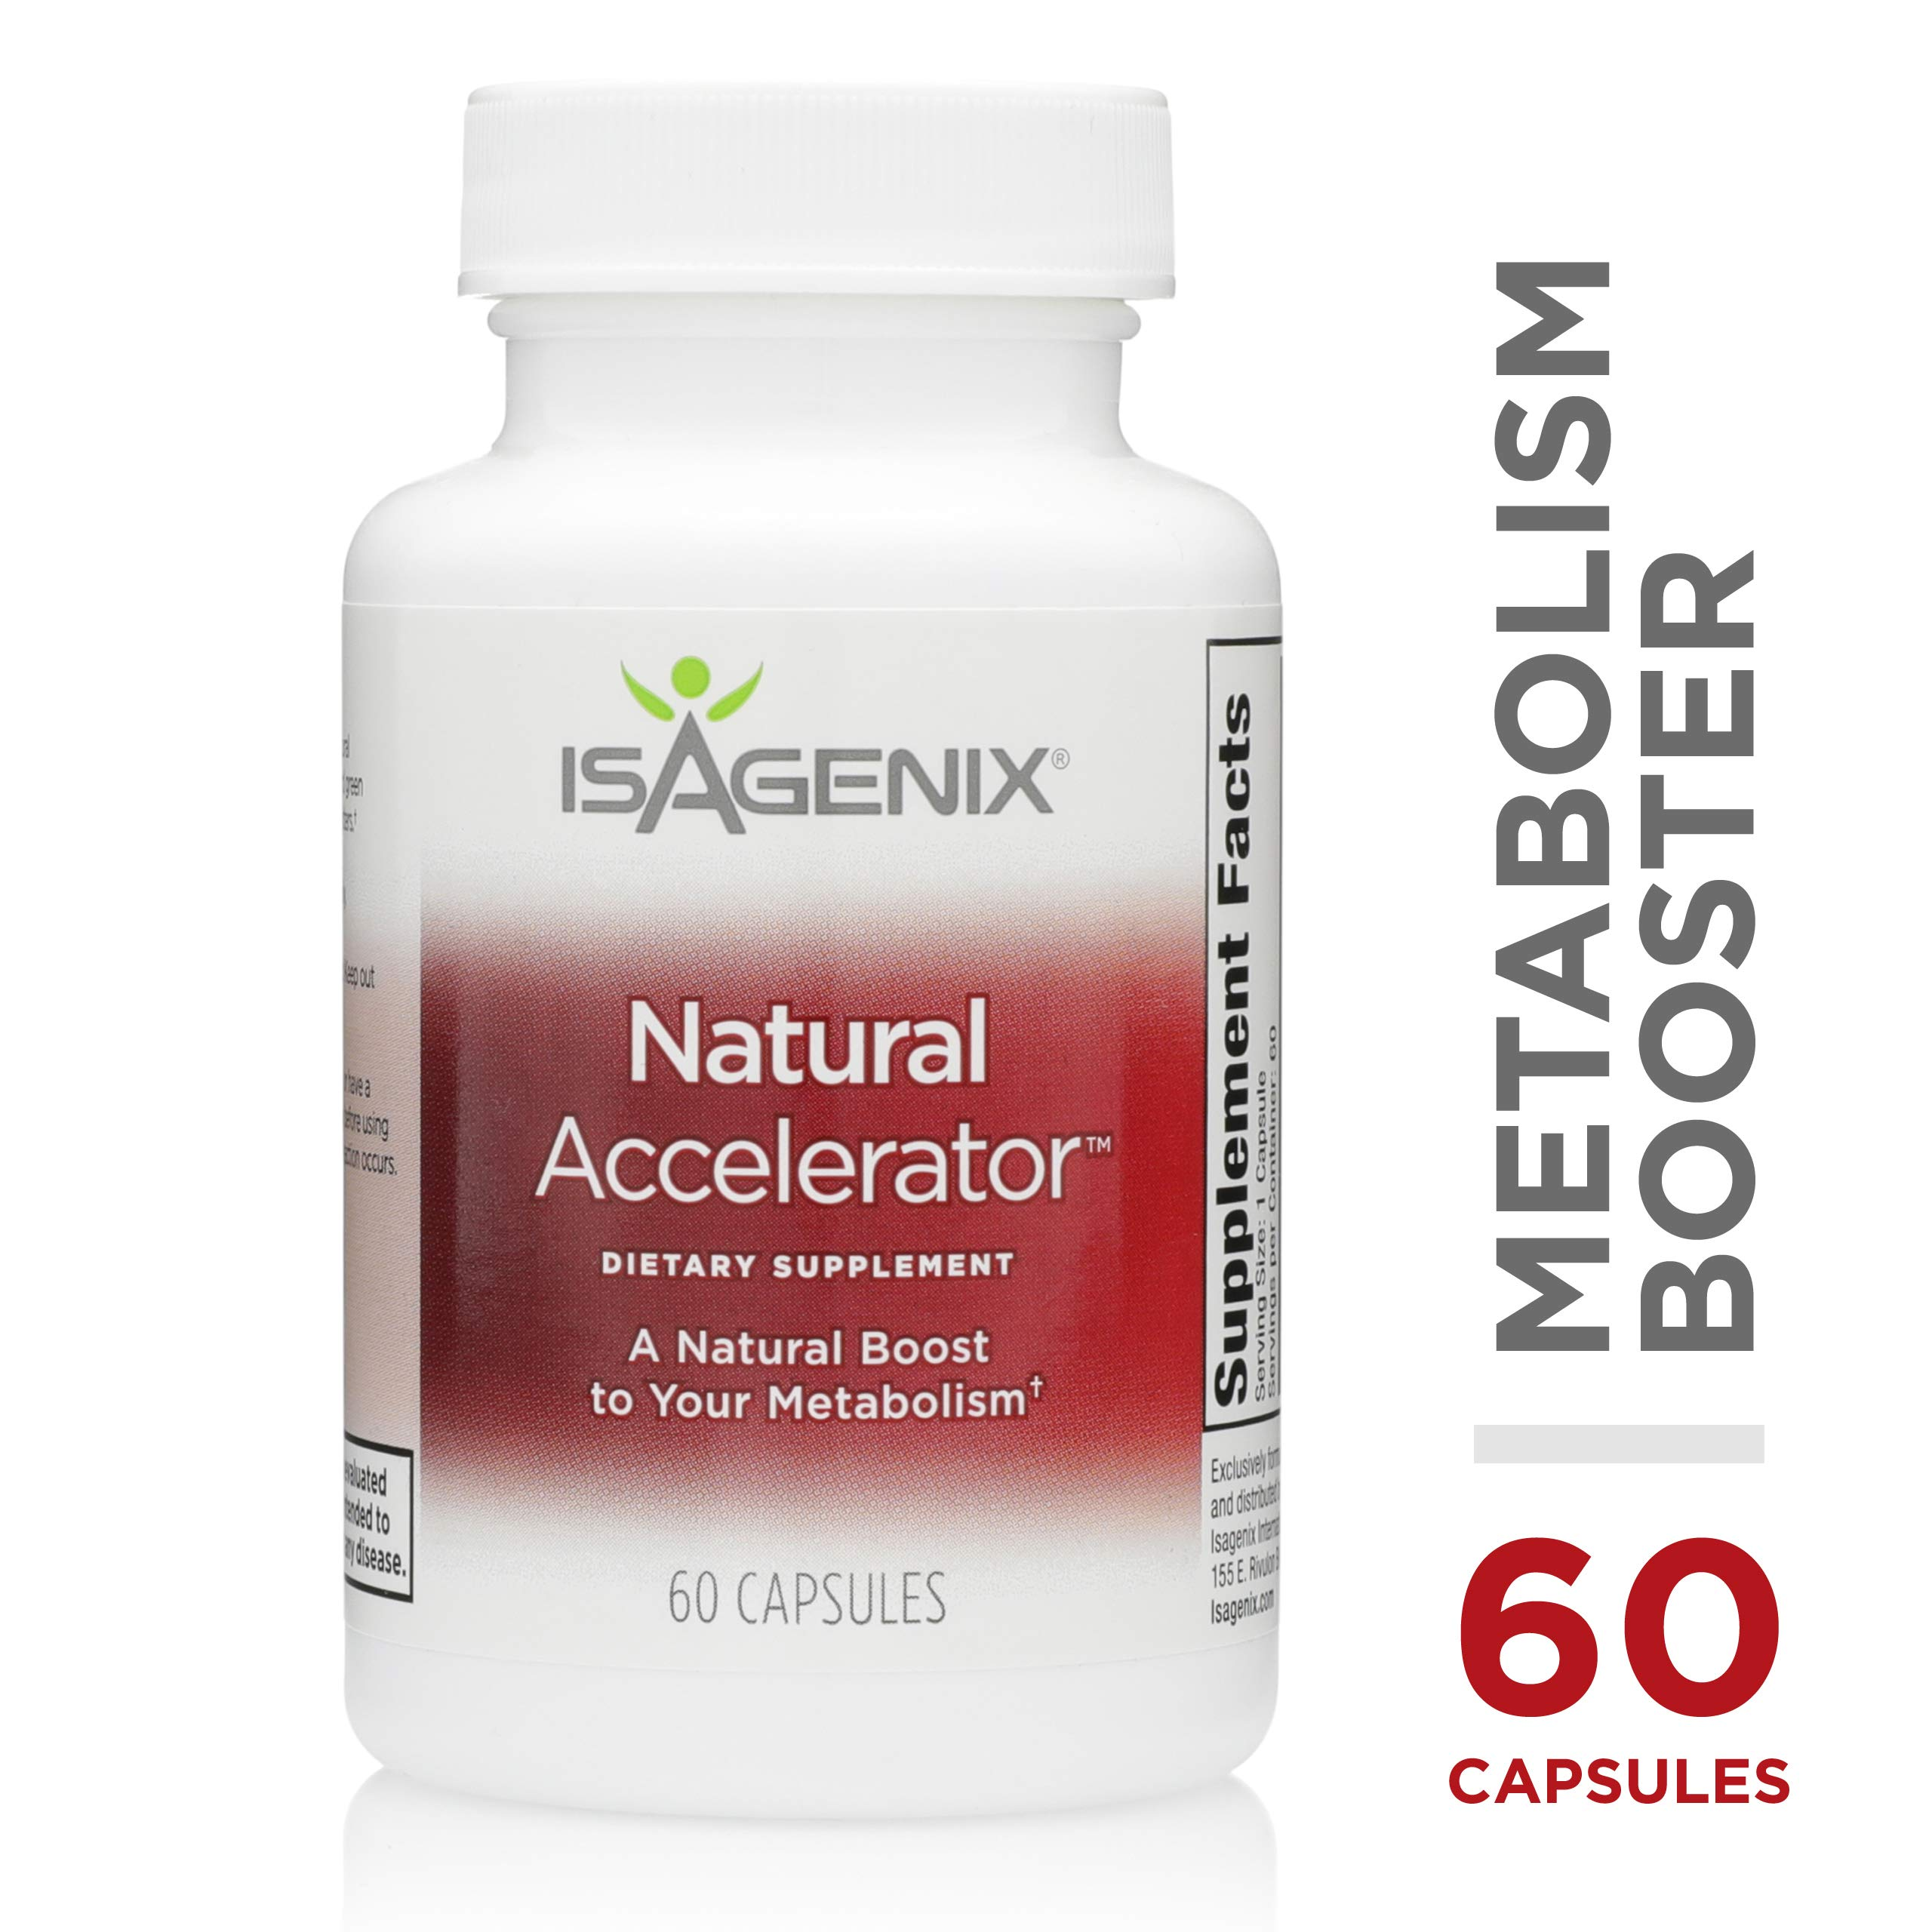 Natural AcceleratorTM - 60 Capsules (60 Servings) by Isagenix